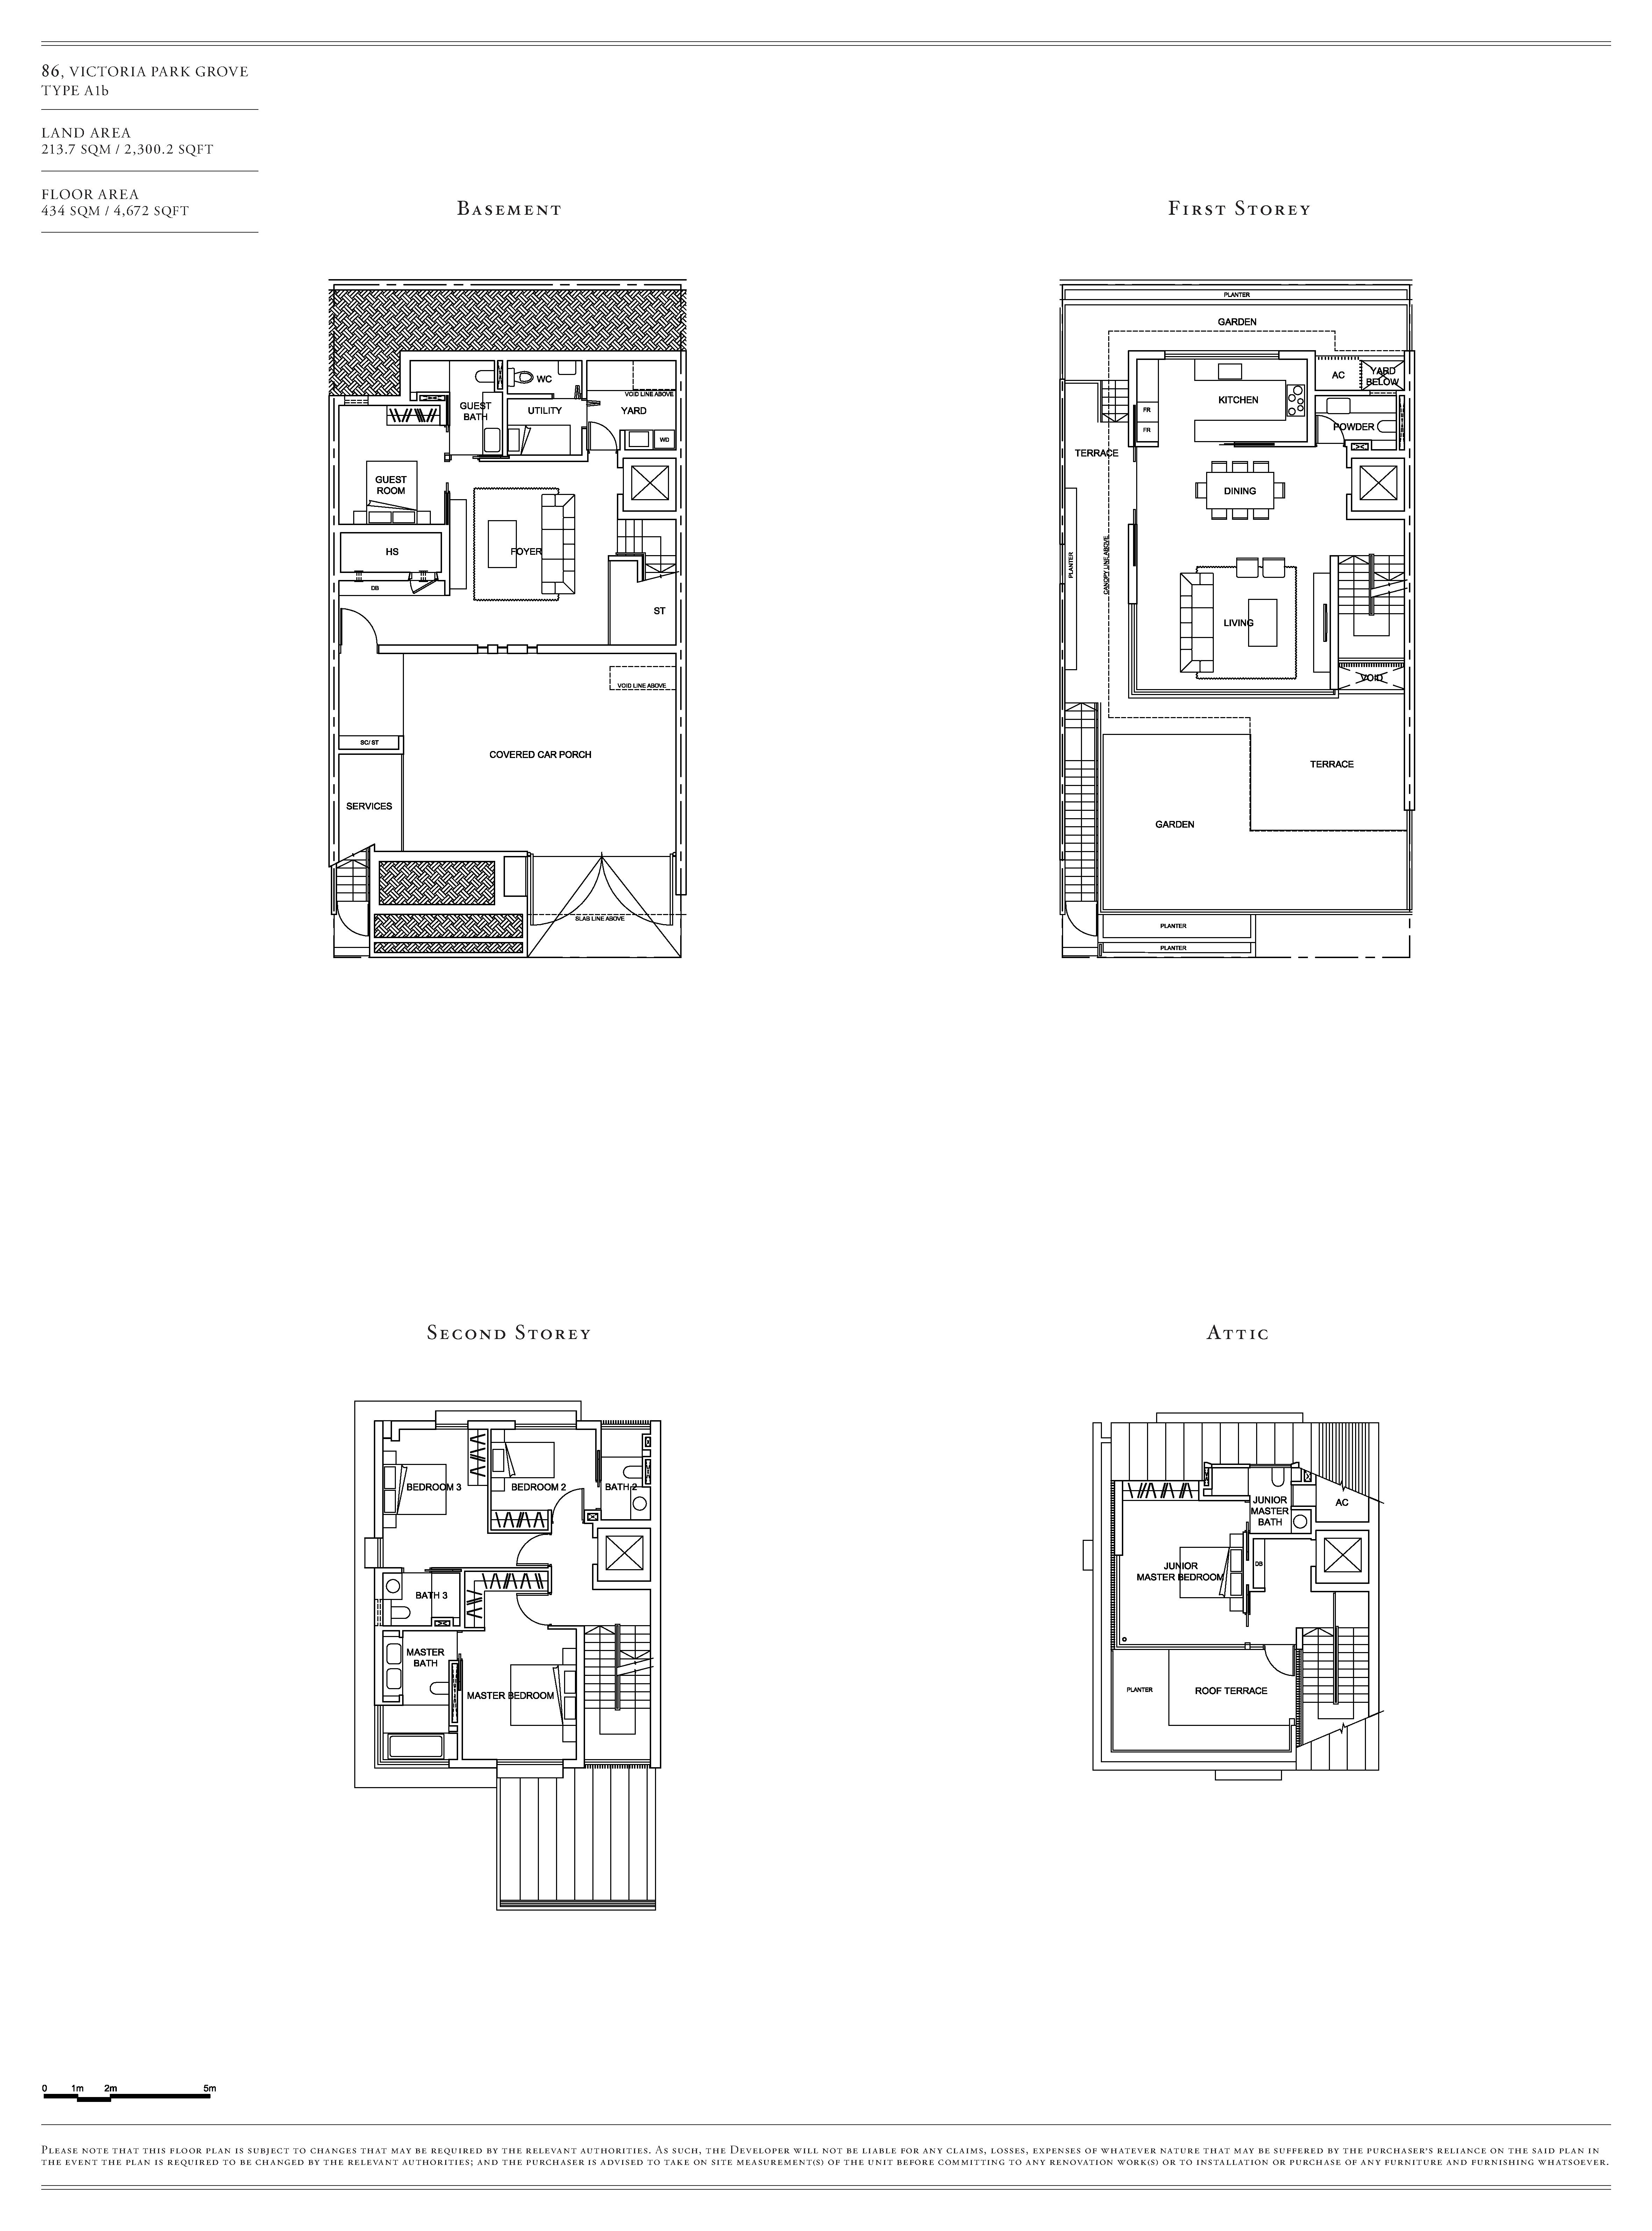 Victoria Park Villas House 86 Type A1b Floor Plans